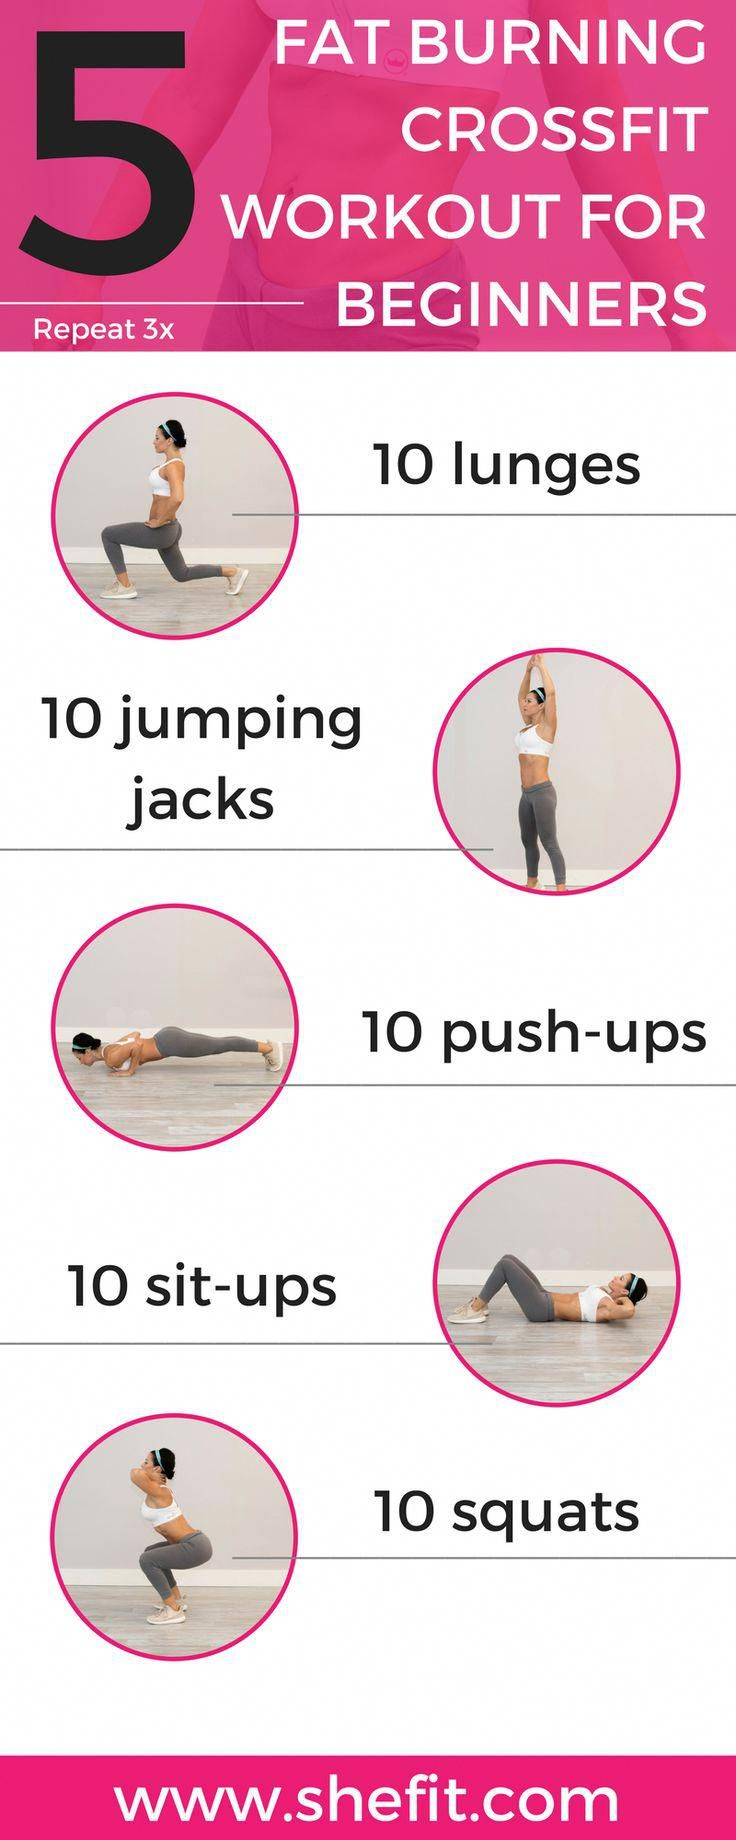 Workout Plans, Important Home Fitness Suggestion To Make